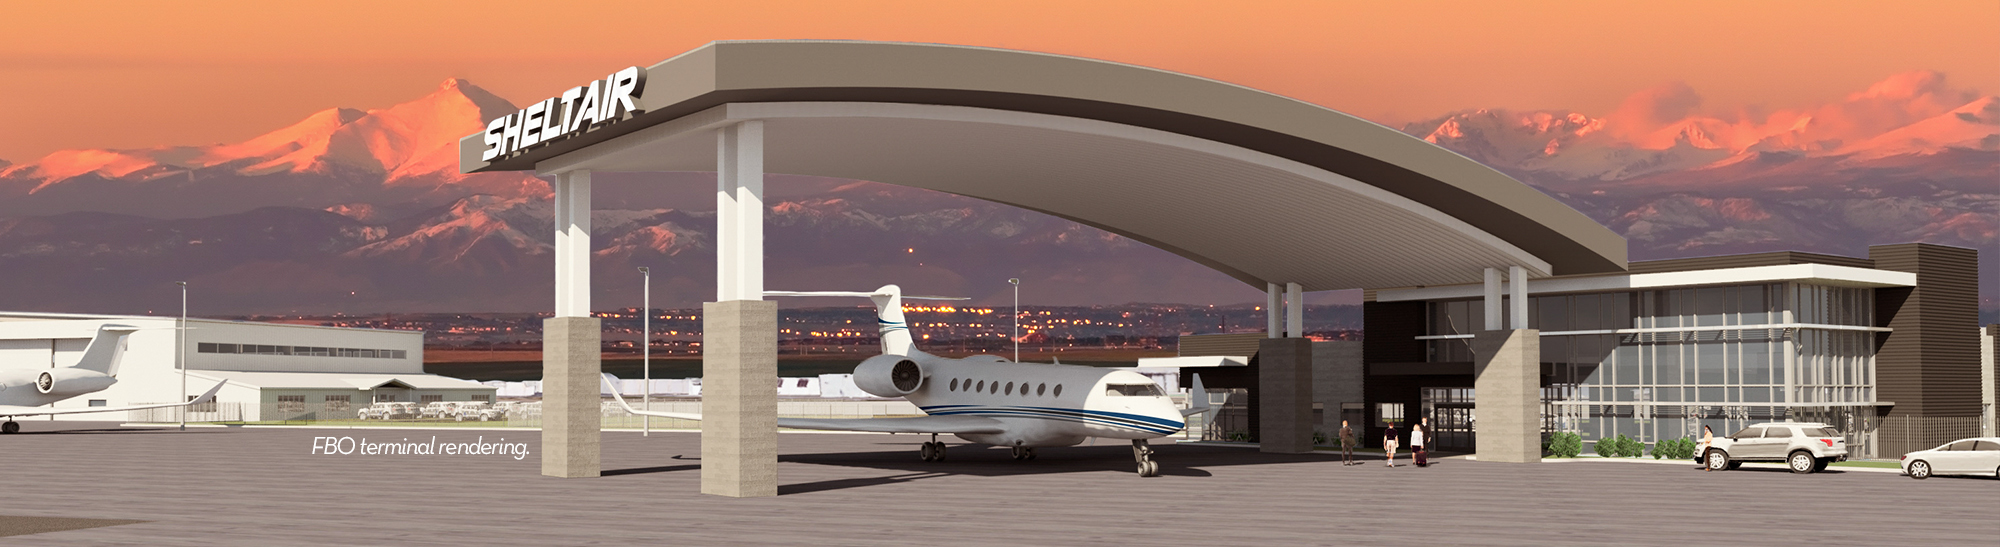 Sheltair Aviation To Break Ground at Colorado/KBJC